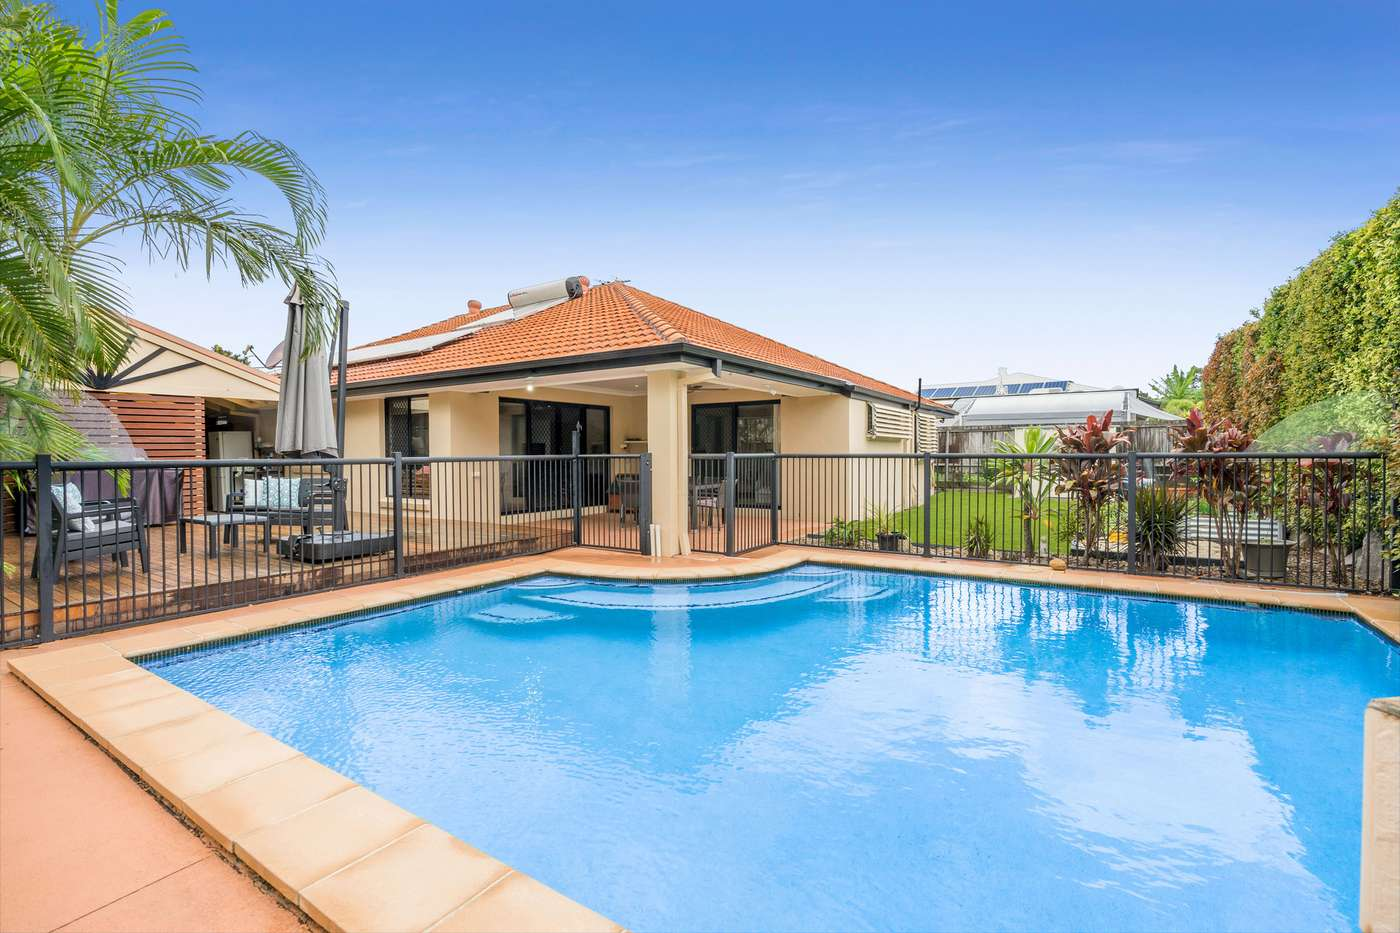 Main view of Homely house listing, 30 Trafalgar Vale Avenue, Wellington Point, QLD 4160